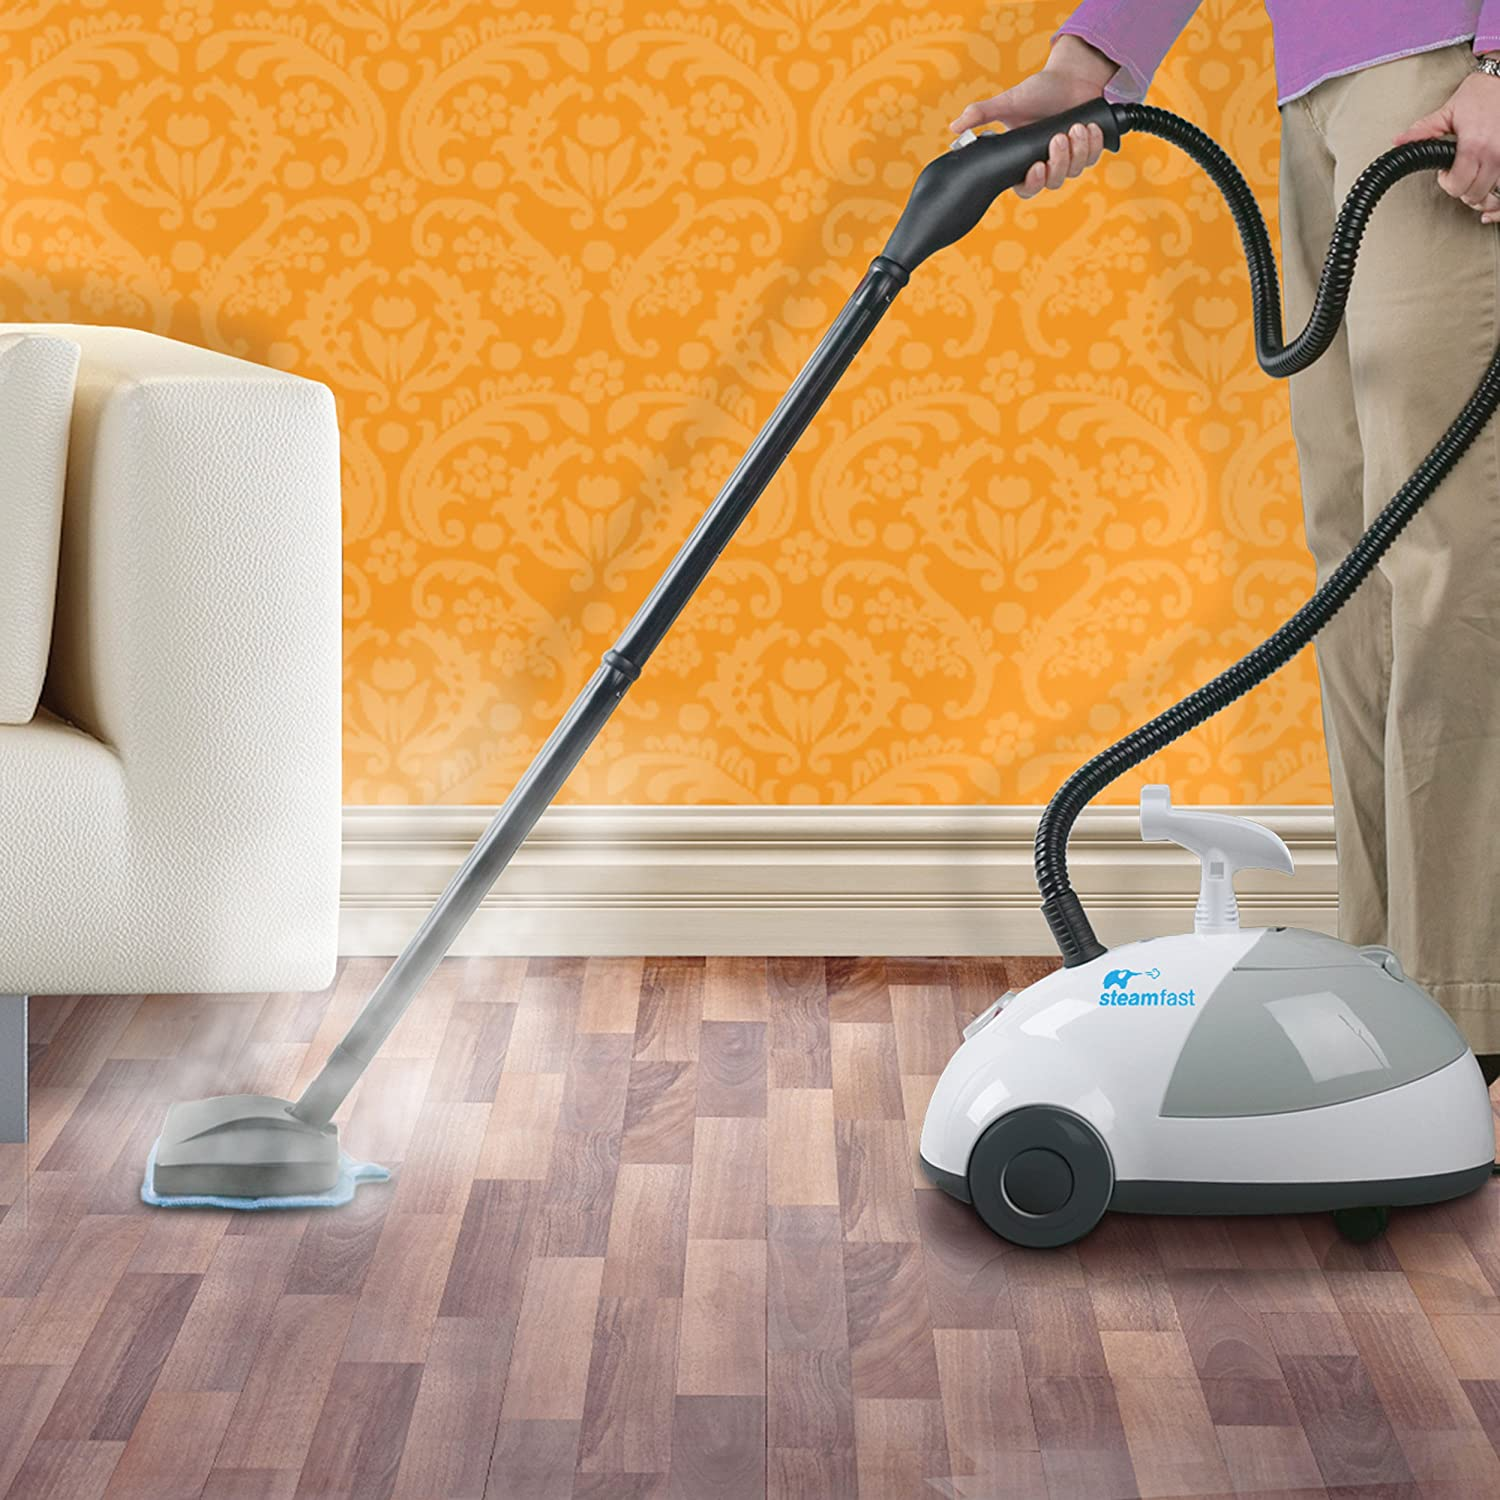 Amazon.com: Steamfast SF-275 Canister Steam Cleaner: Home & Kitchen